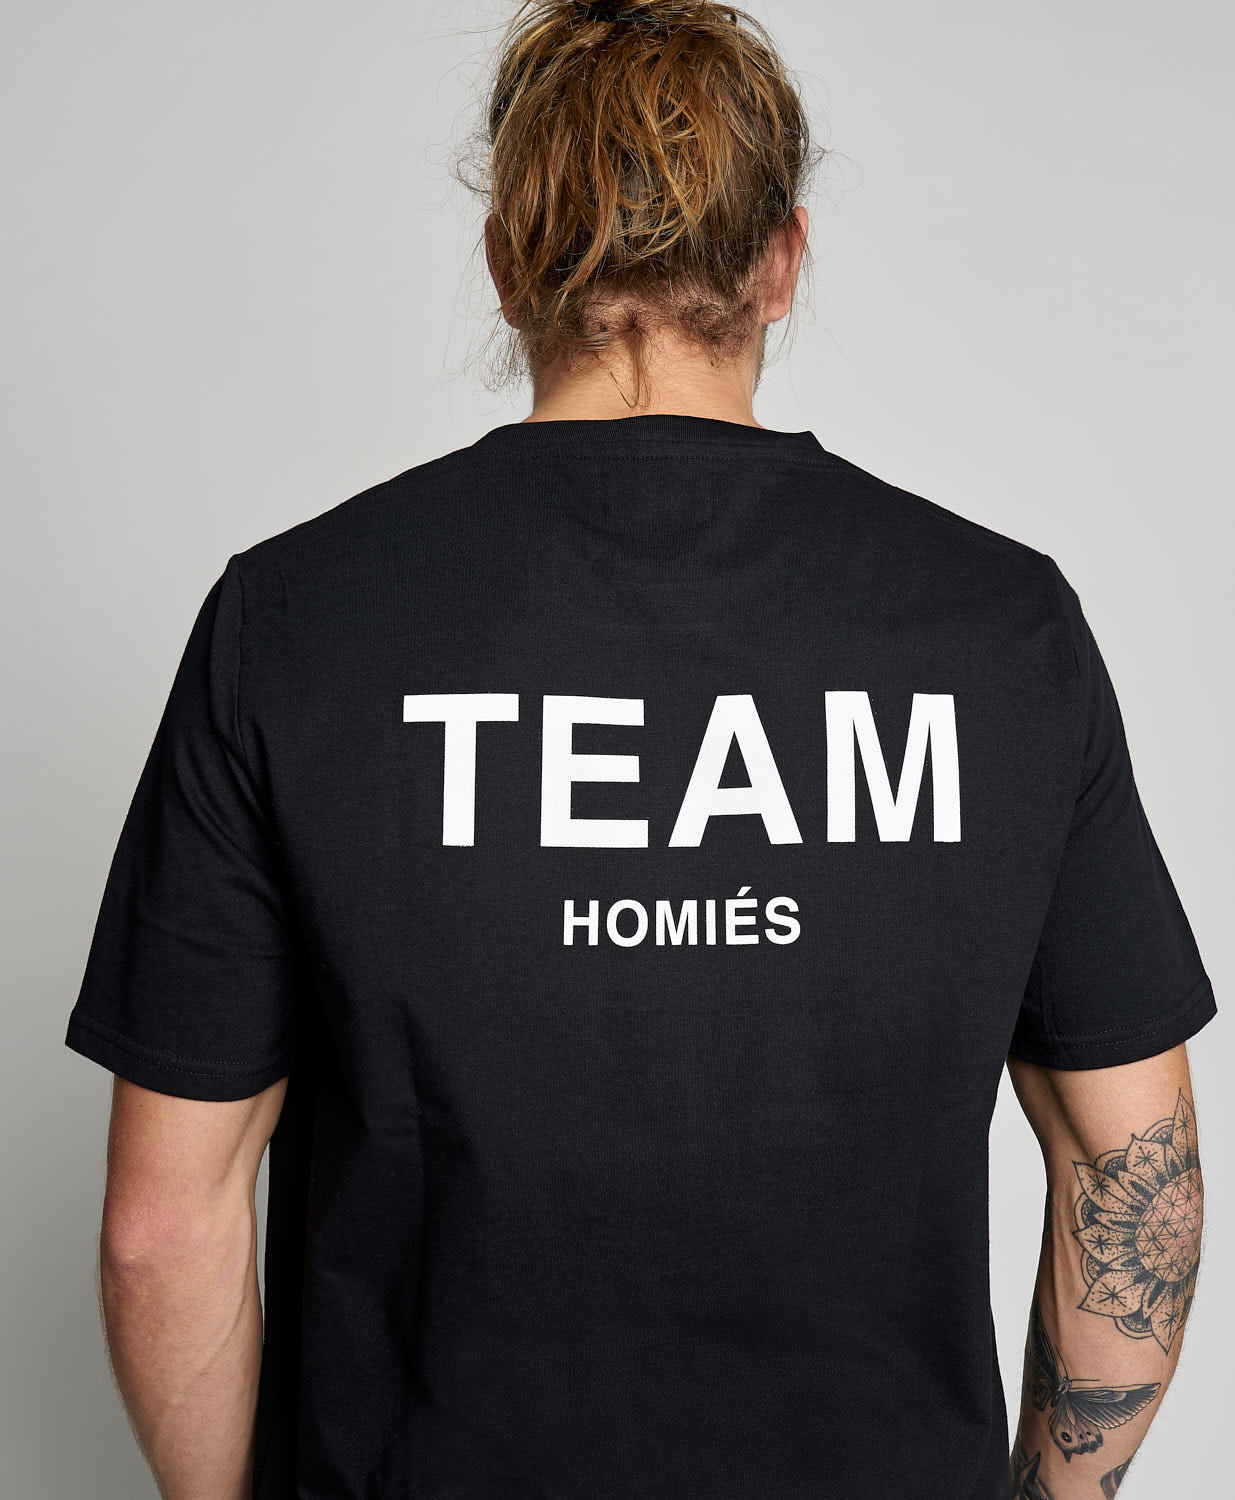 TEAM HOMIES T-SHIRT BLACK